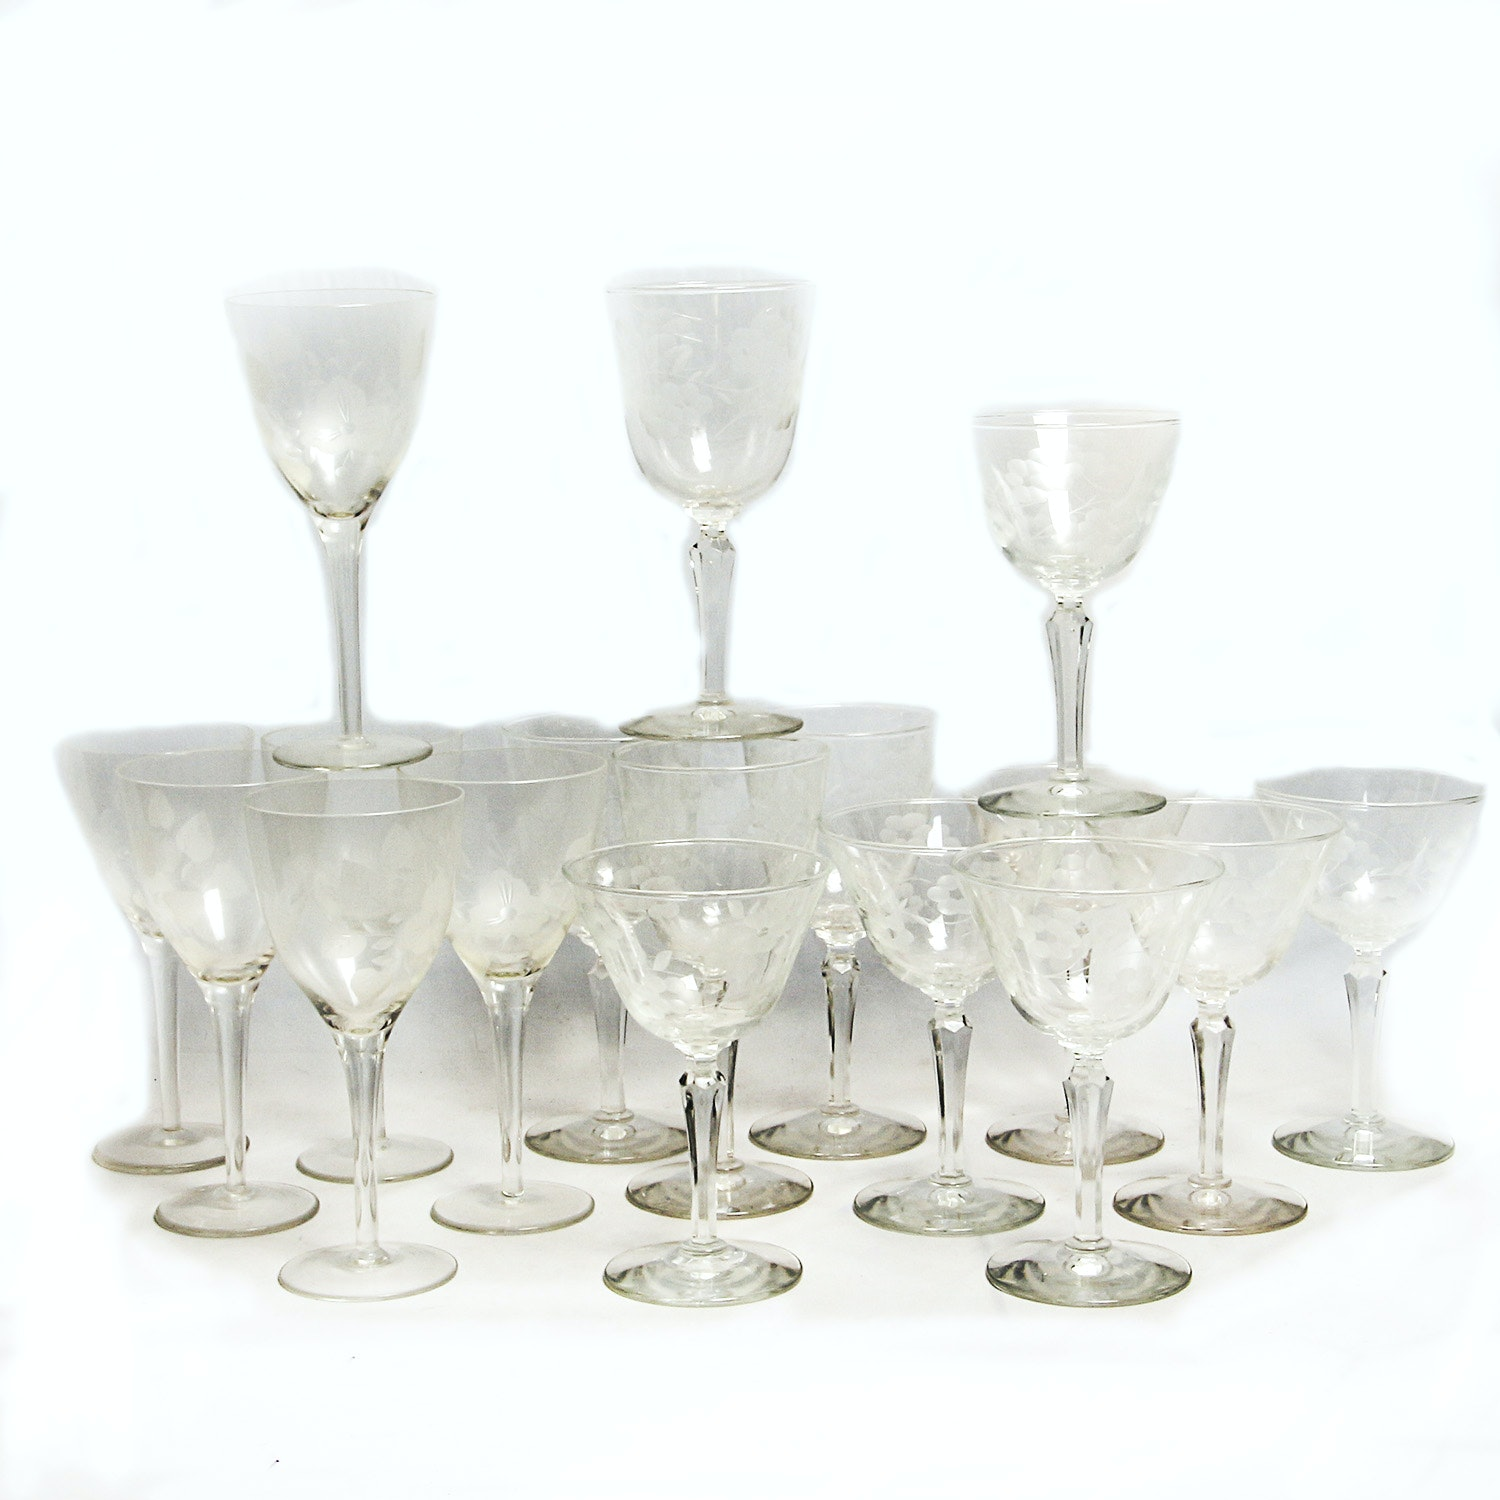 Collection of Etched Floral Stemware